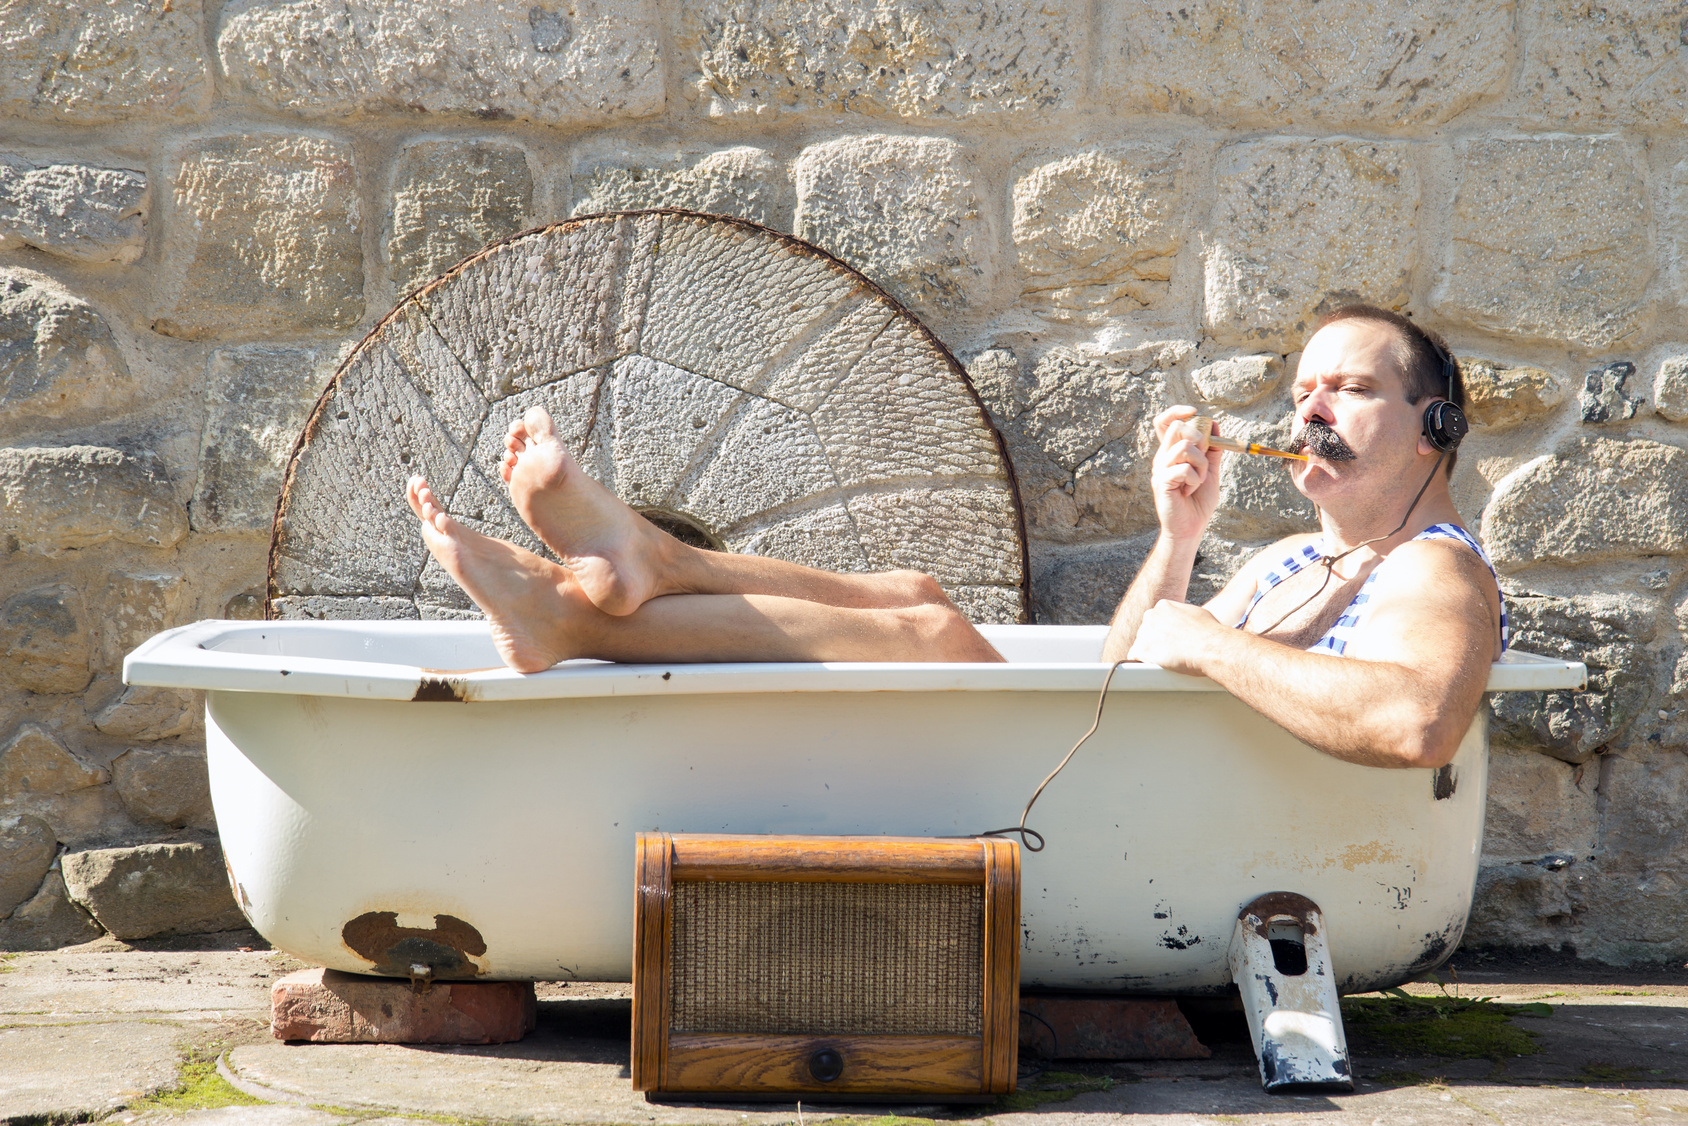 Adding Music to Your Hot Tub Experience